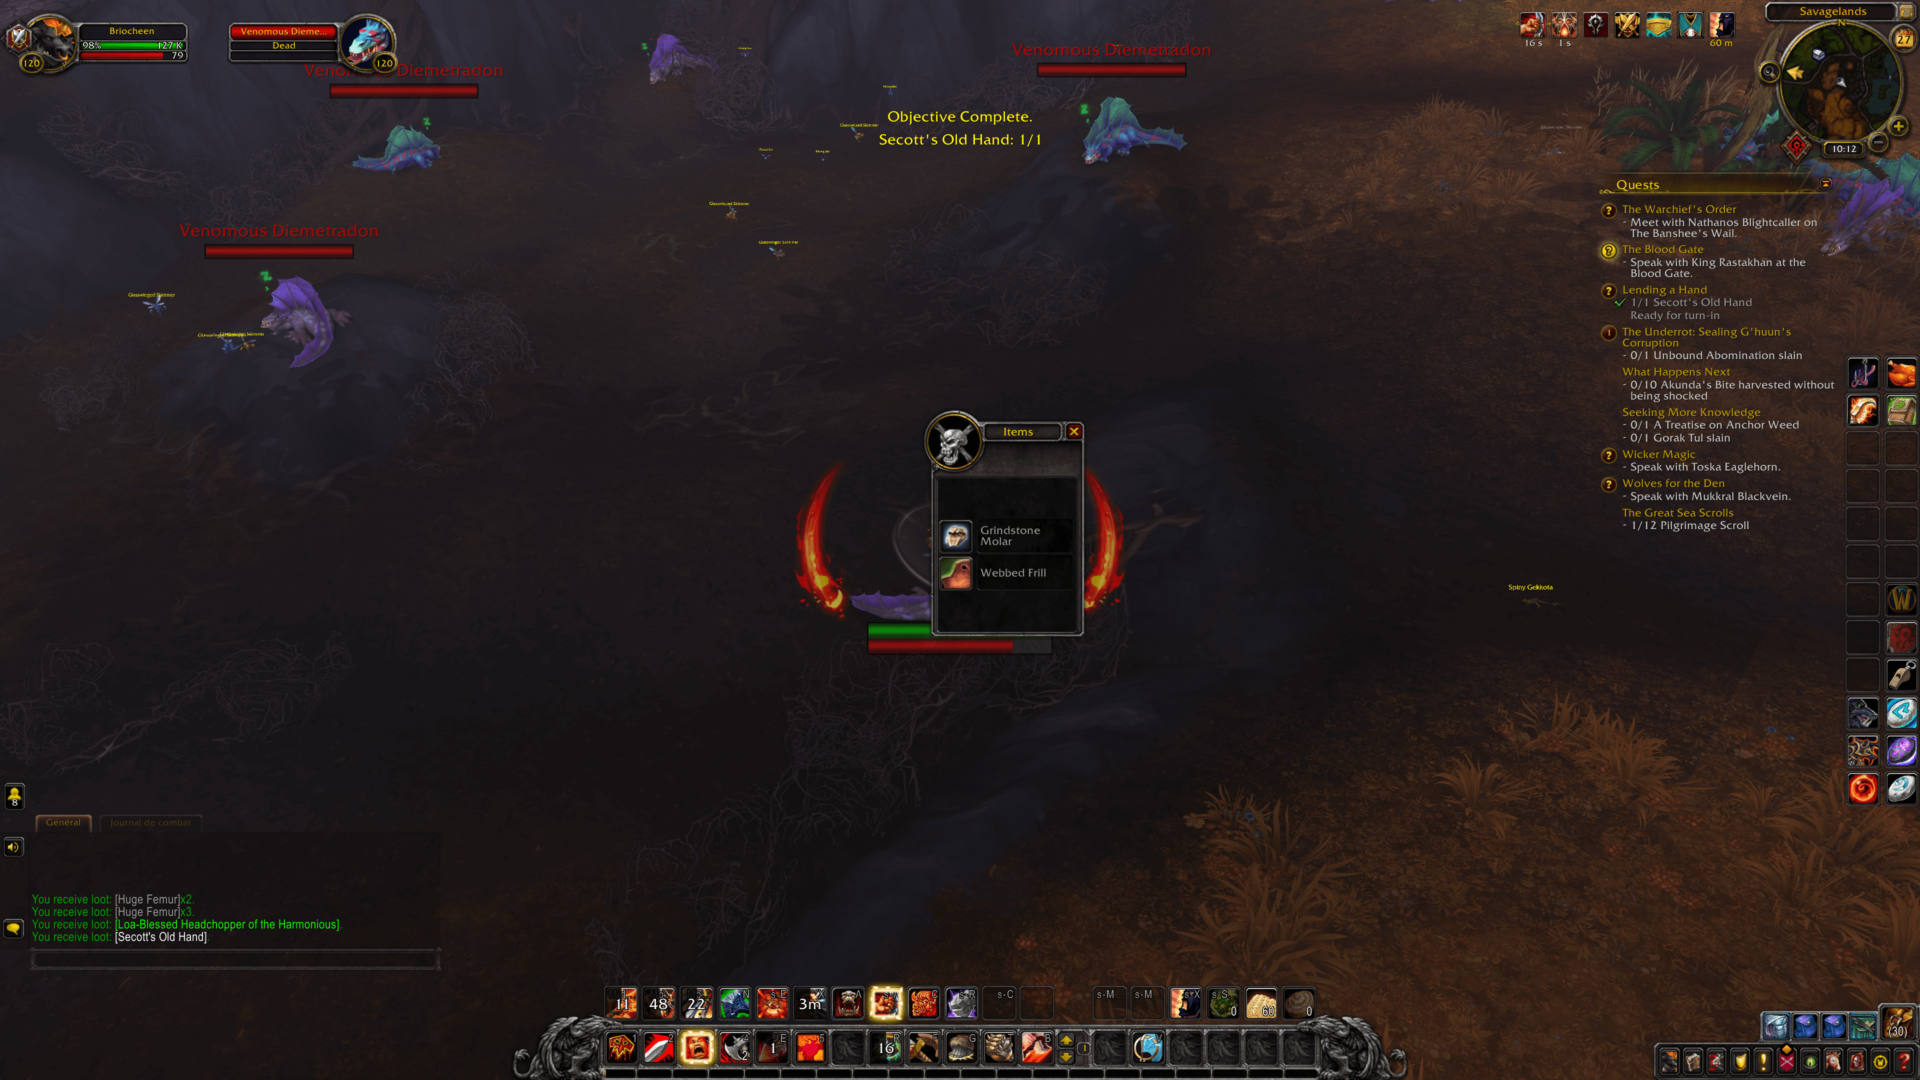 Items loot screenshot of World of Warcraft video game interface.